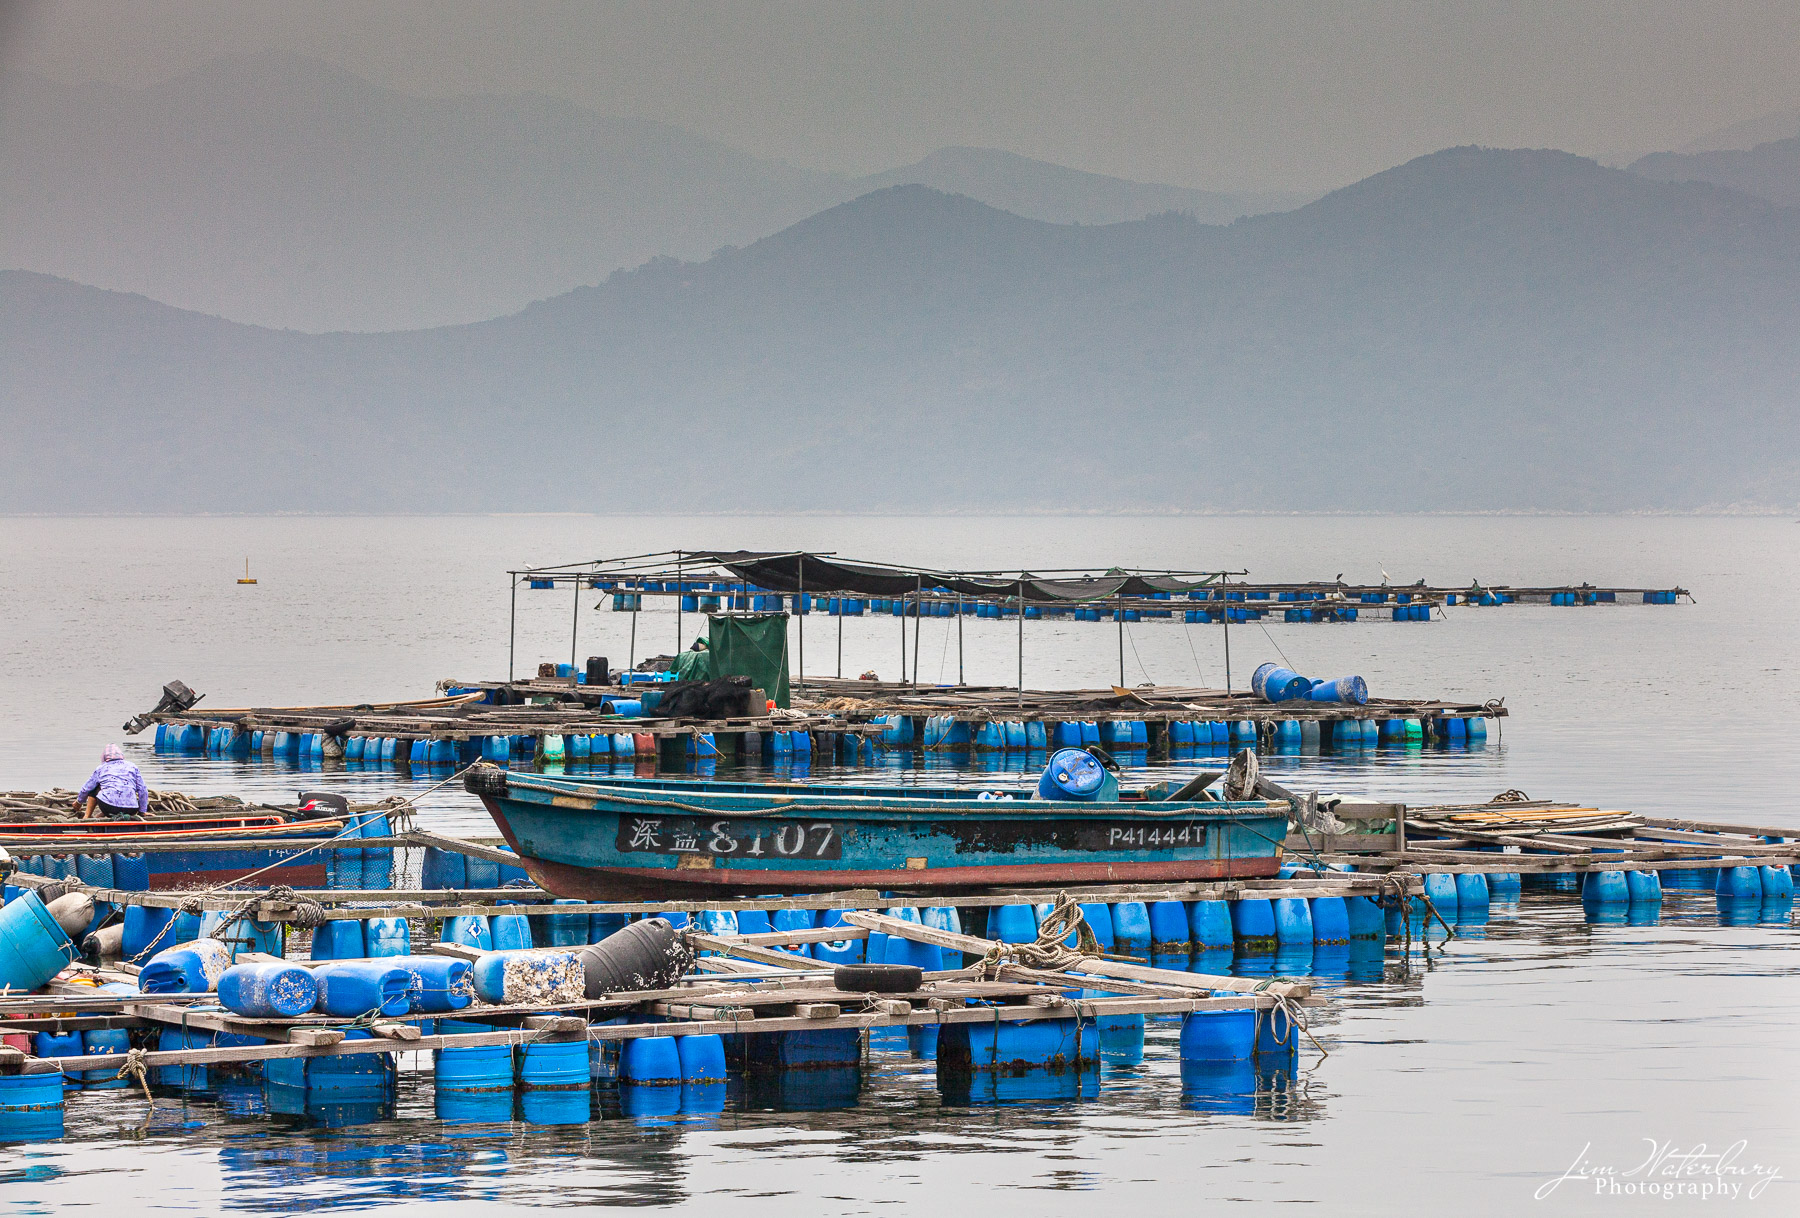 A floating fish farm at Tap Mun (Grass Island), Hong Kong, against a backdrop of hazy mountains in the distance. Tap Mun is located...